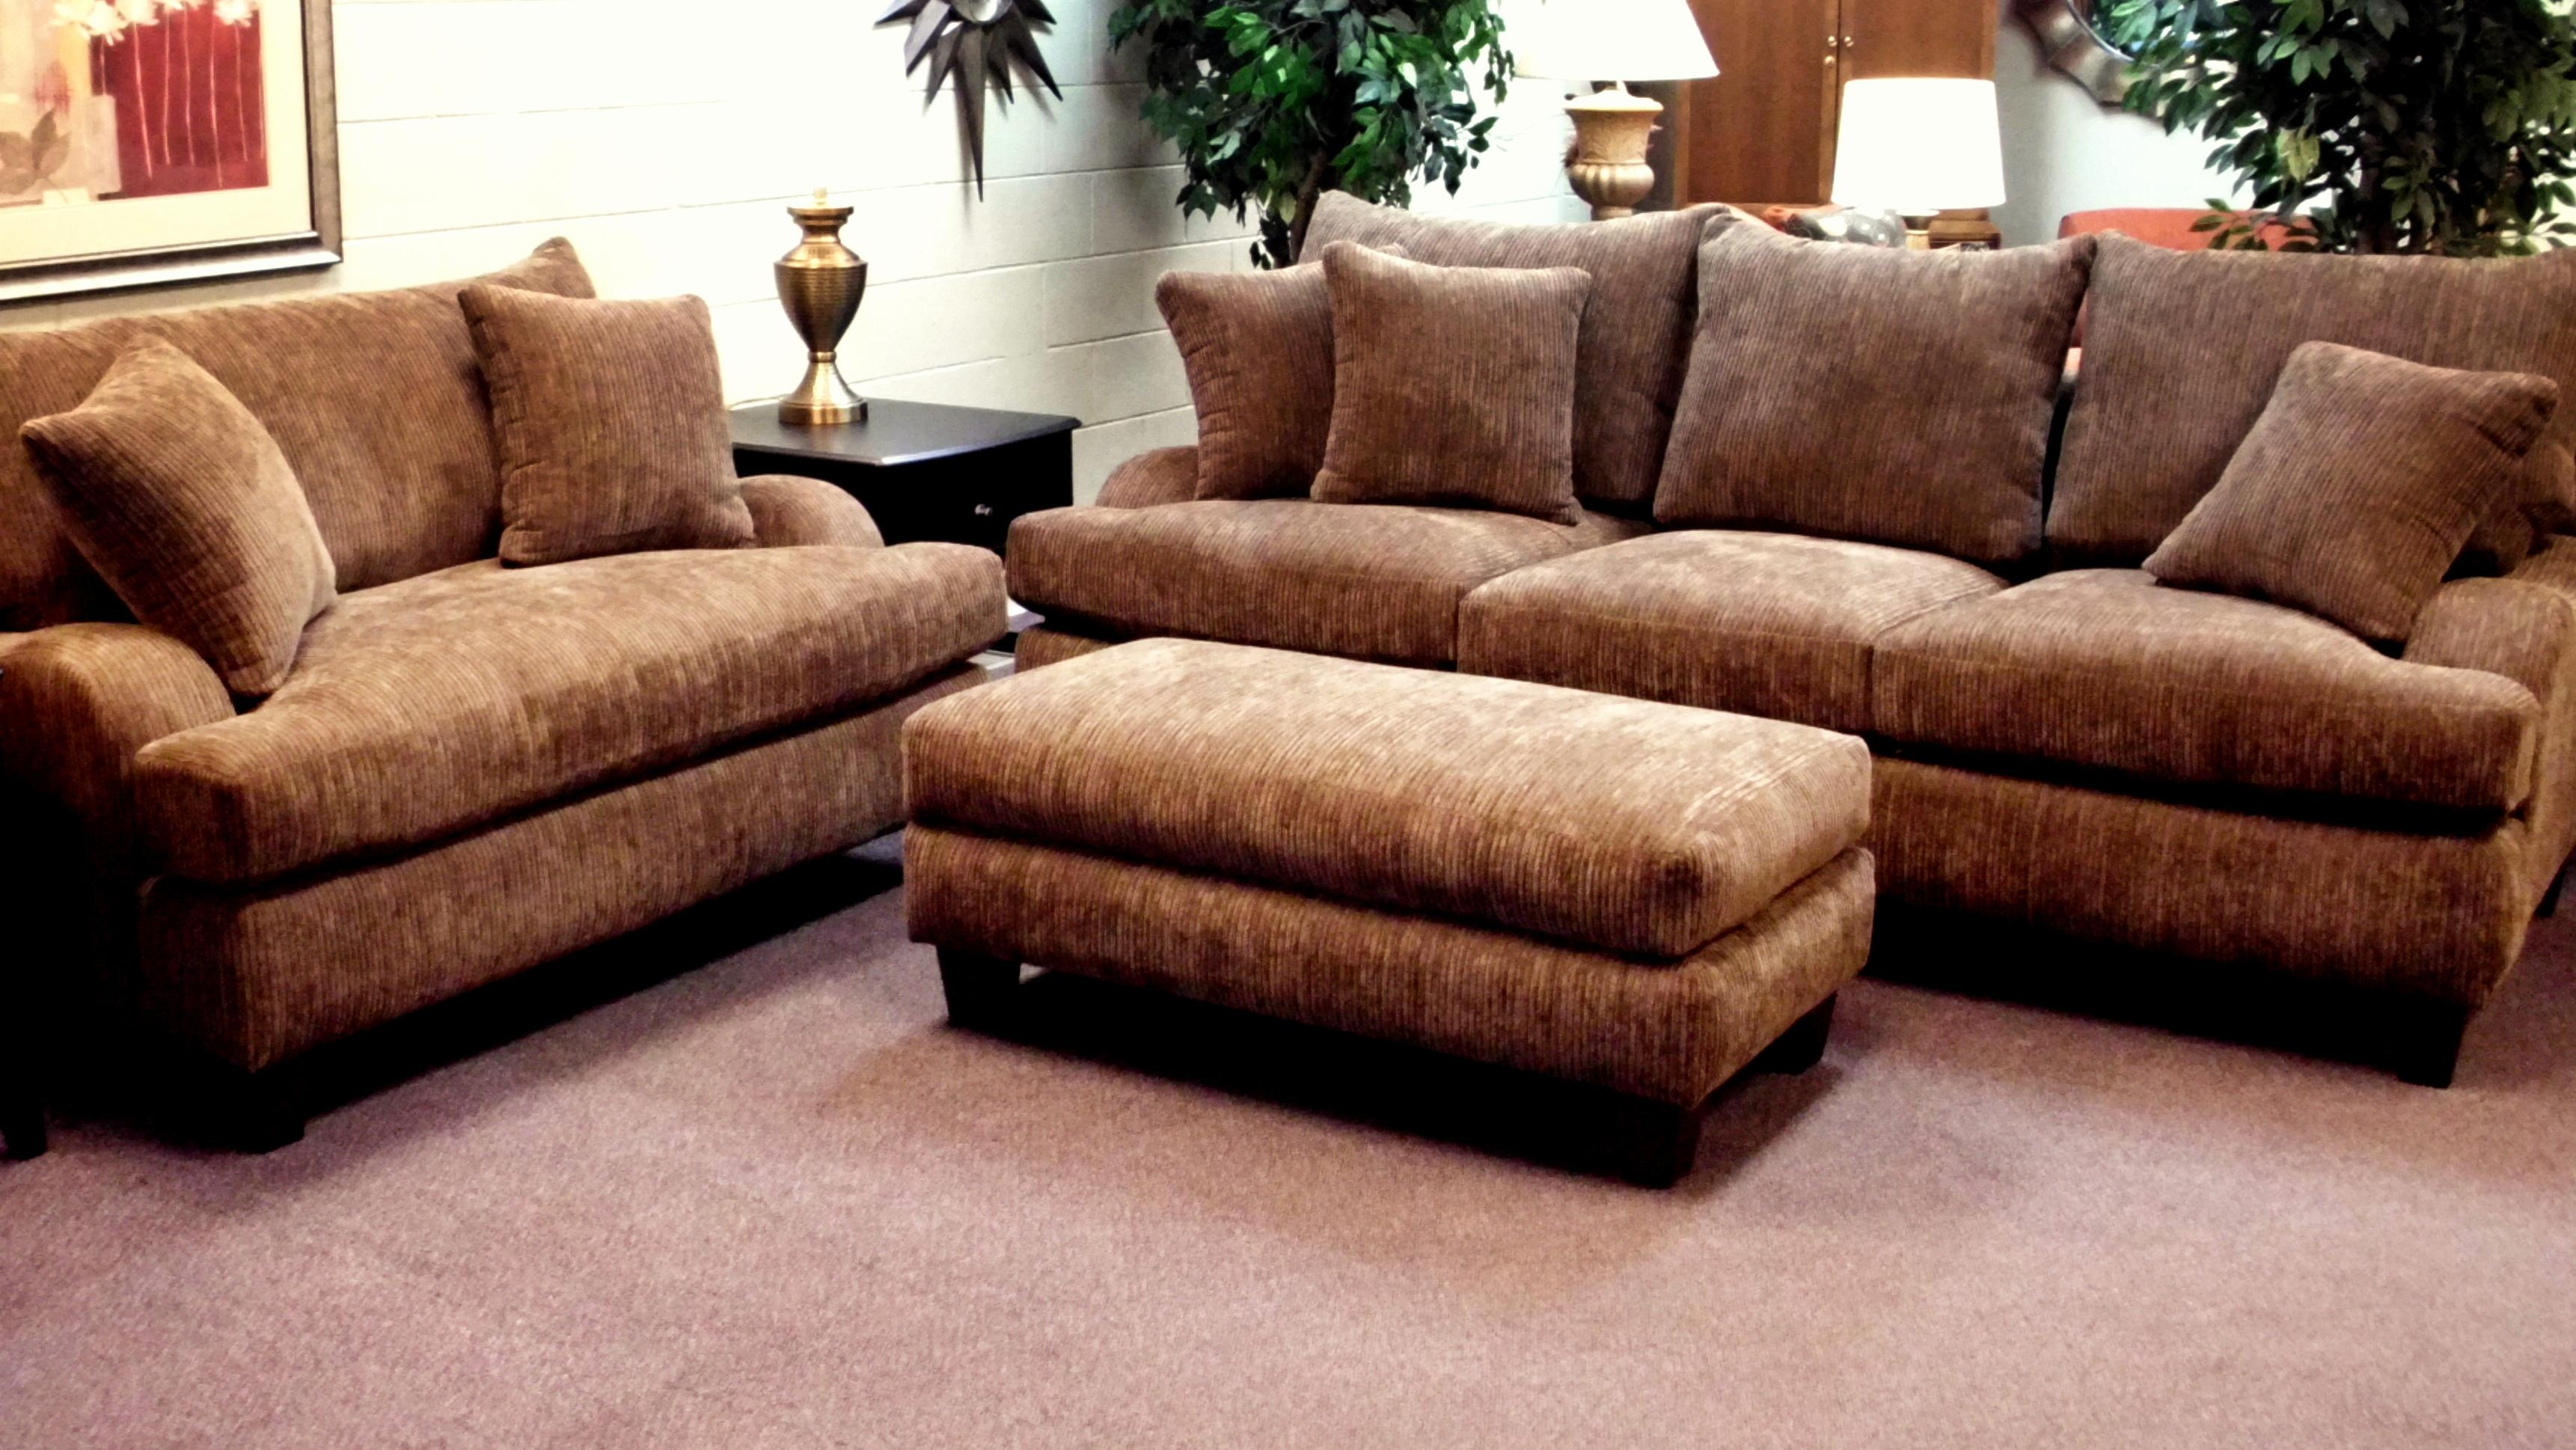 Furniture: Extra Large Sofa | Oversized Couch | Deep Cushion Couch With Regard To Deep Cushion Sofa (View 2 of 20)